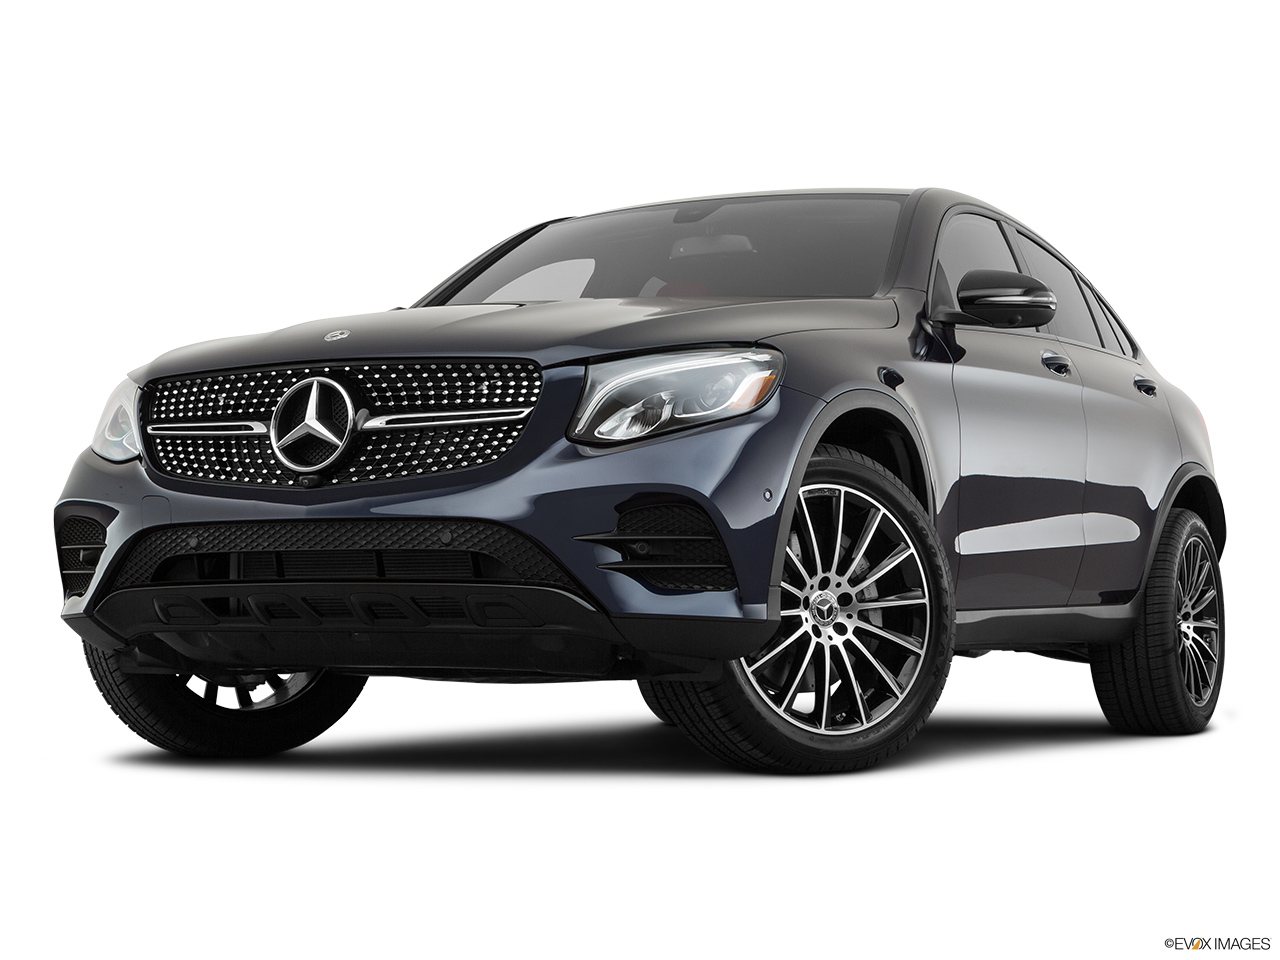 2019 Mercedes-Benz GLC-Class Coupe GLC 300 4MATIC Front angle view, low wide perspective.